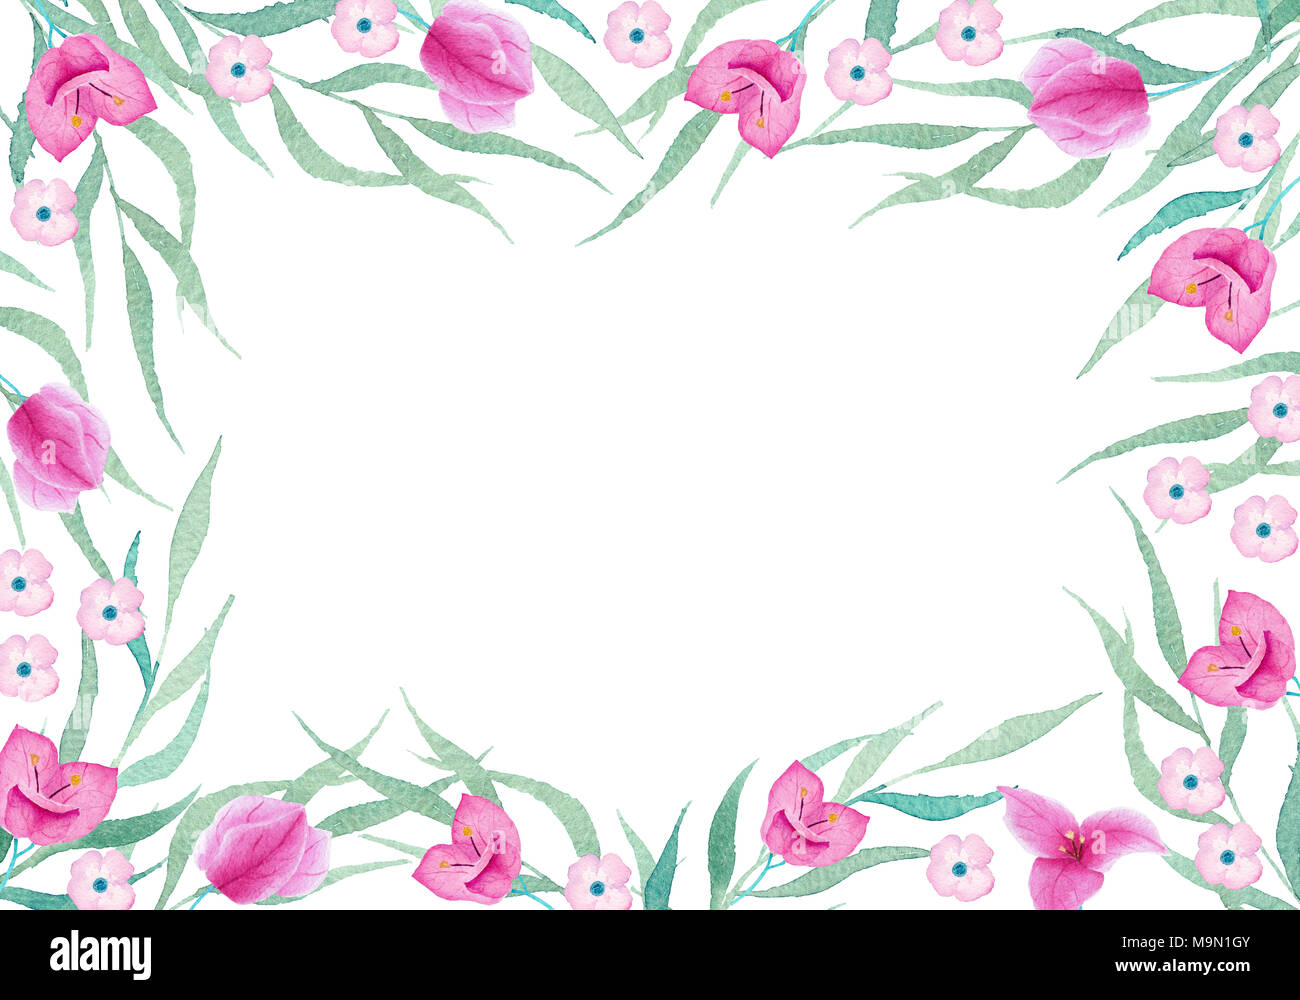 Watercolor hand painted floral frame on white background. Can use it ...